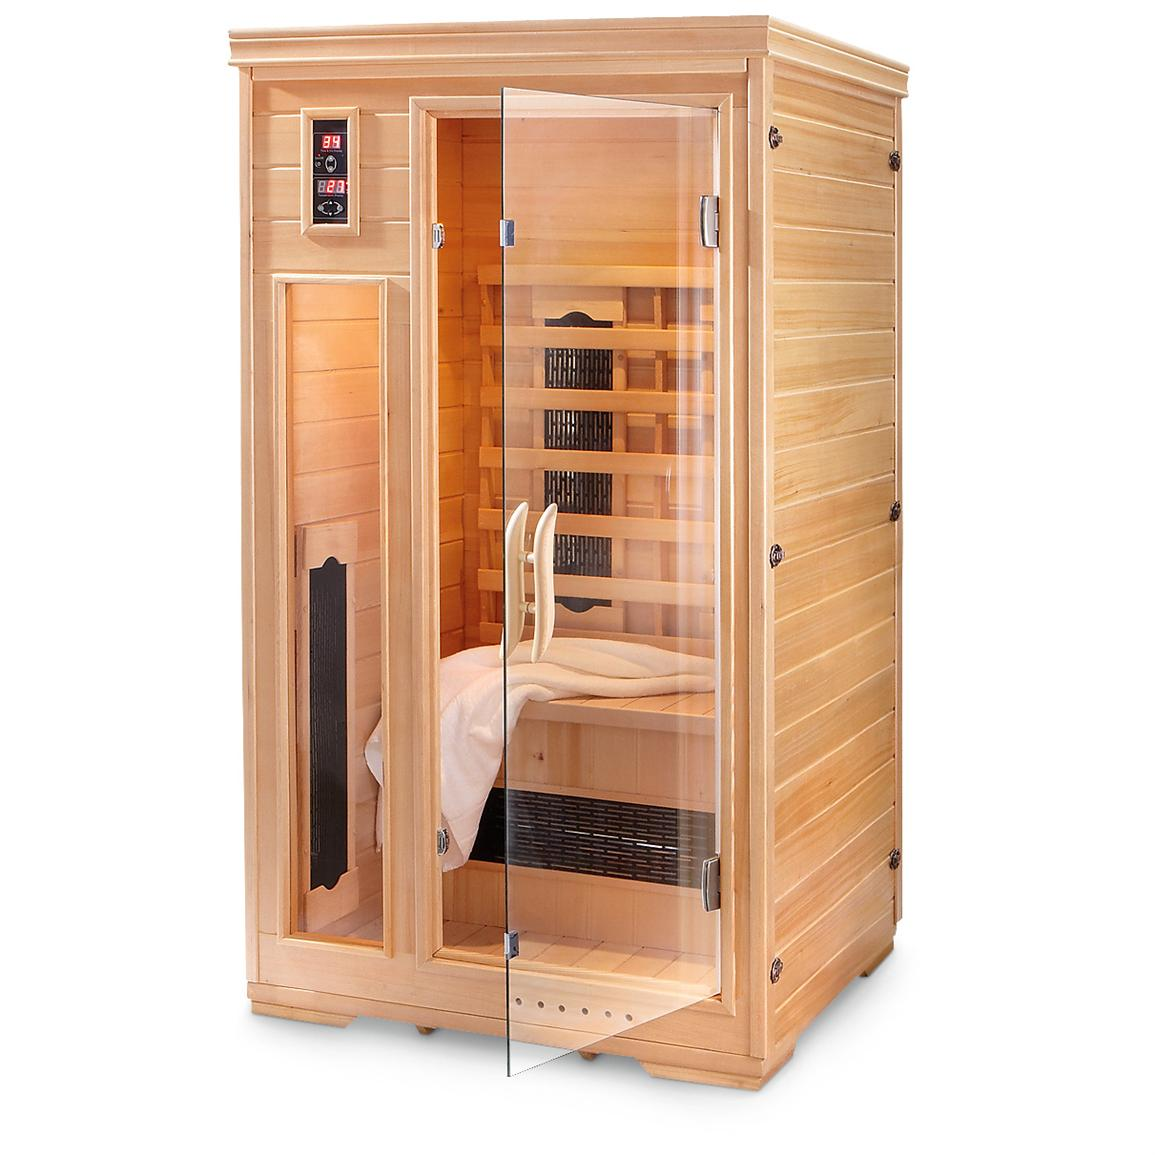 5 best infrared saunas with reviews 2017. Black Bedroom Furniture Sets. Home Design Ideas